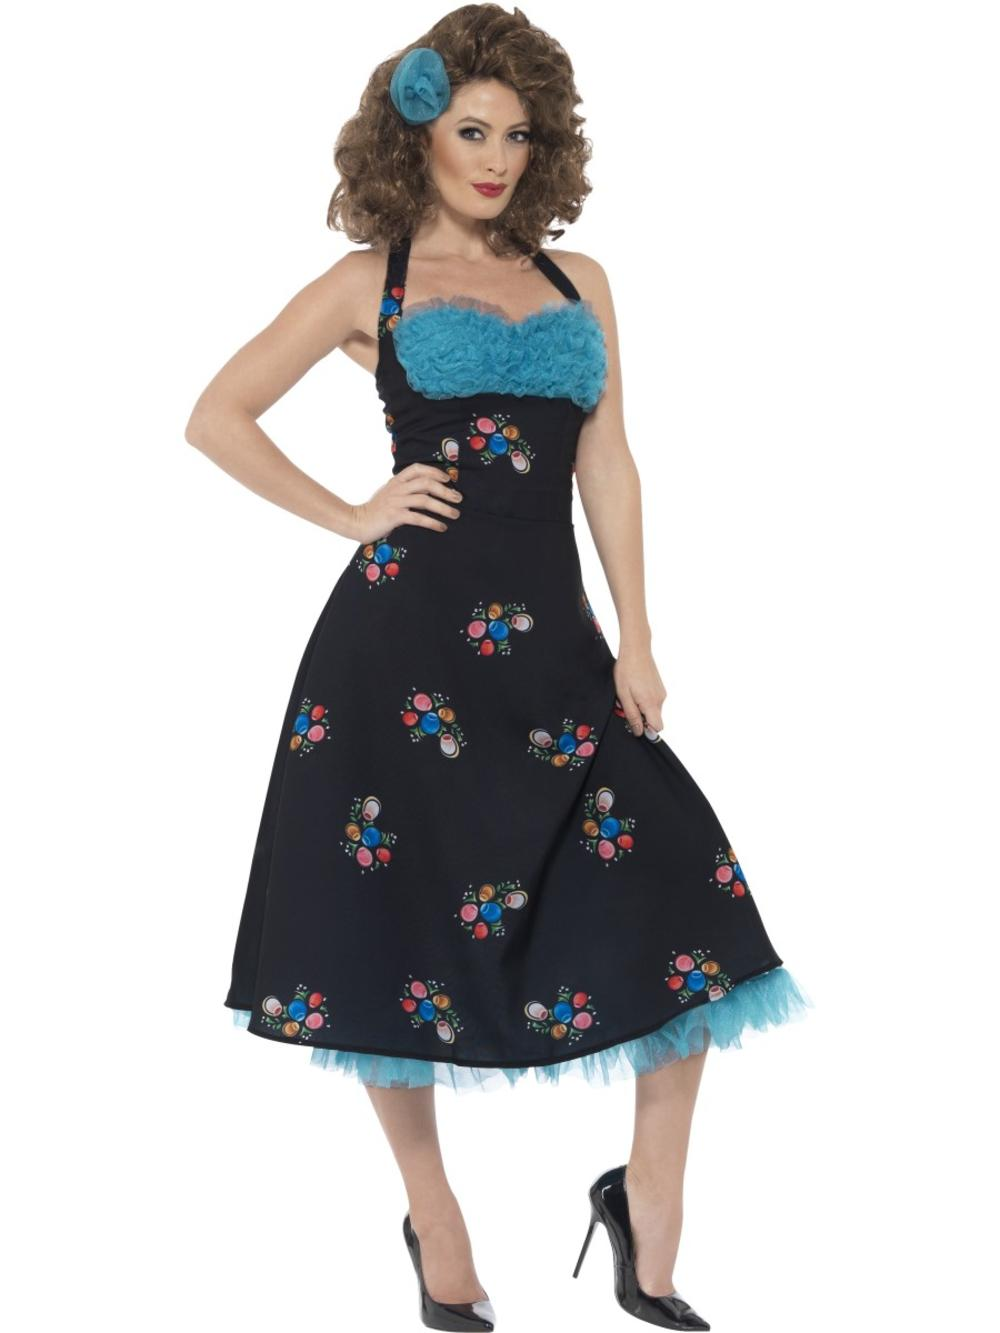 Grease Cha Cha DiGregorio Ladies Fancy Dress 50s Movie Character Adults Costume